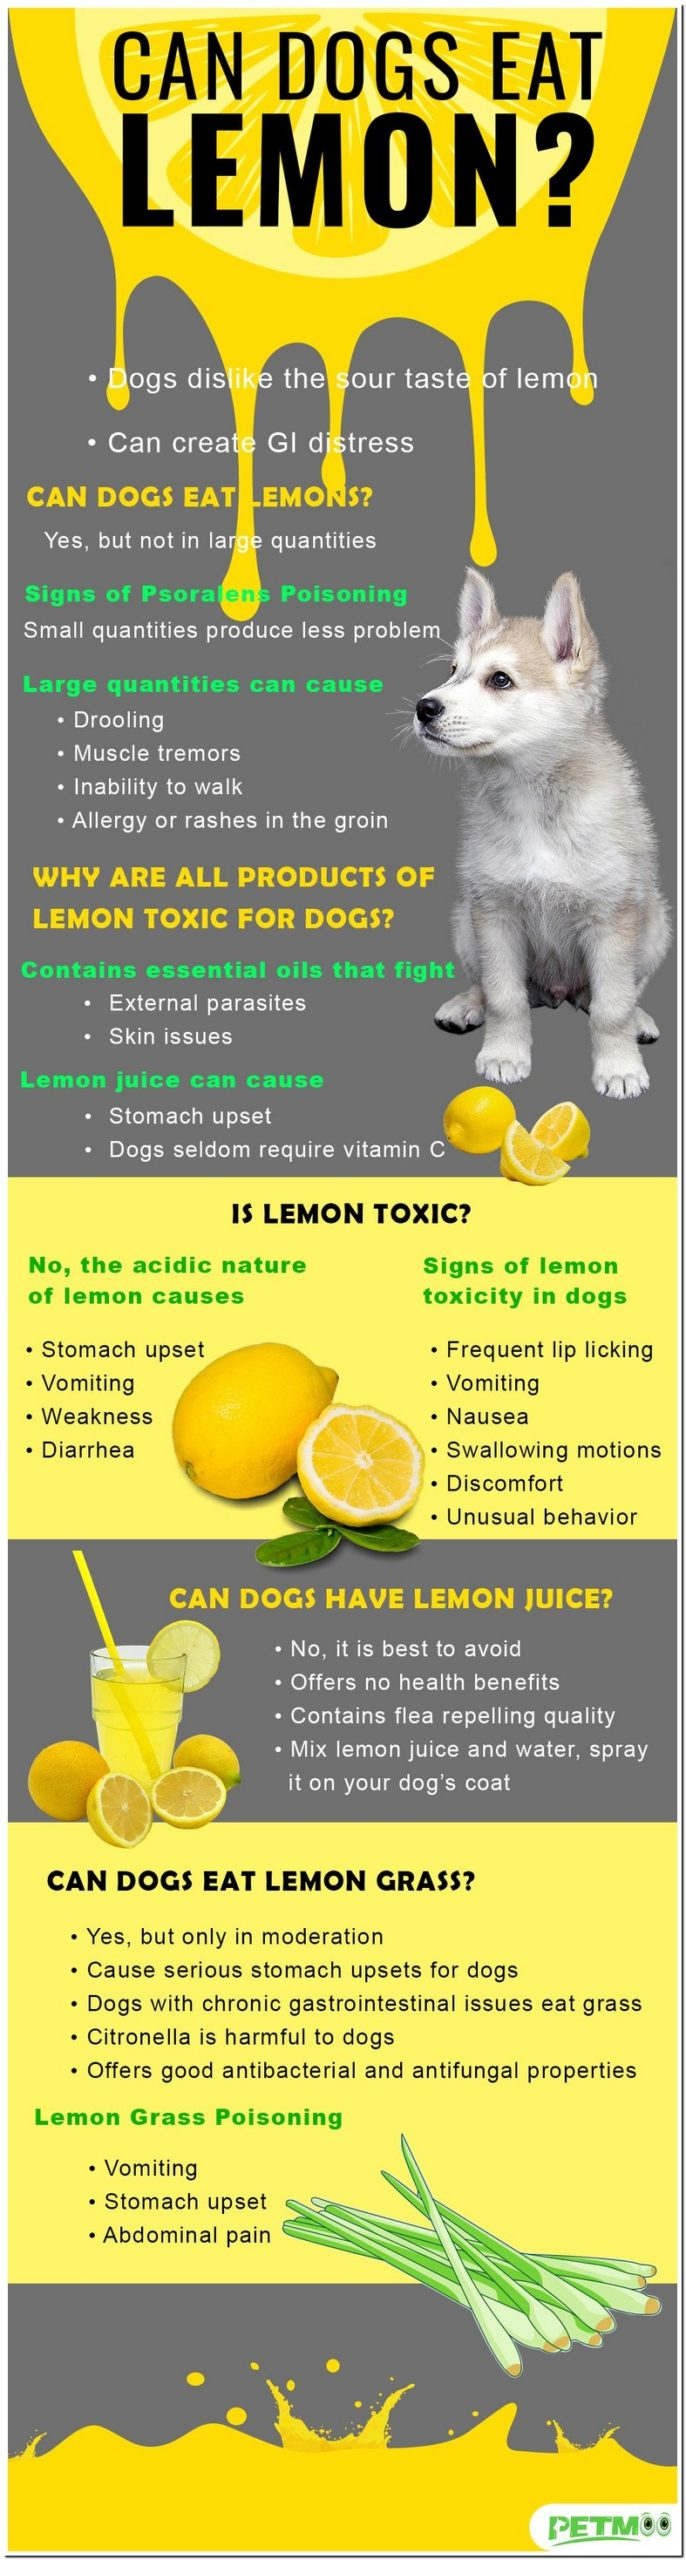 Are Lemons Safe For Dogs To Eat